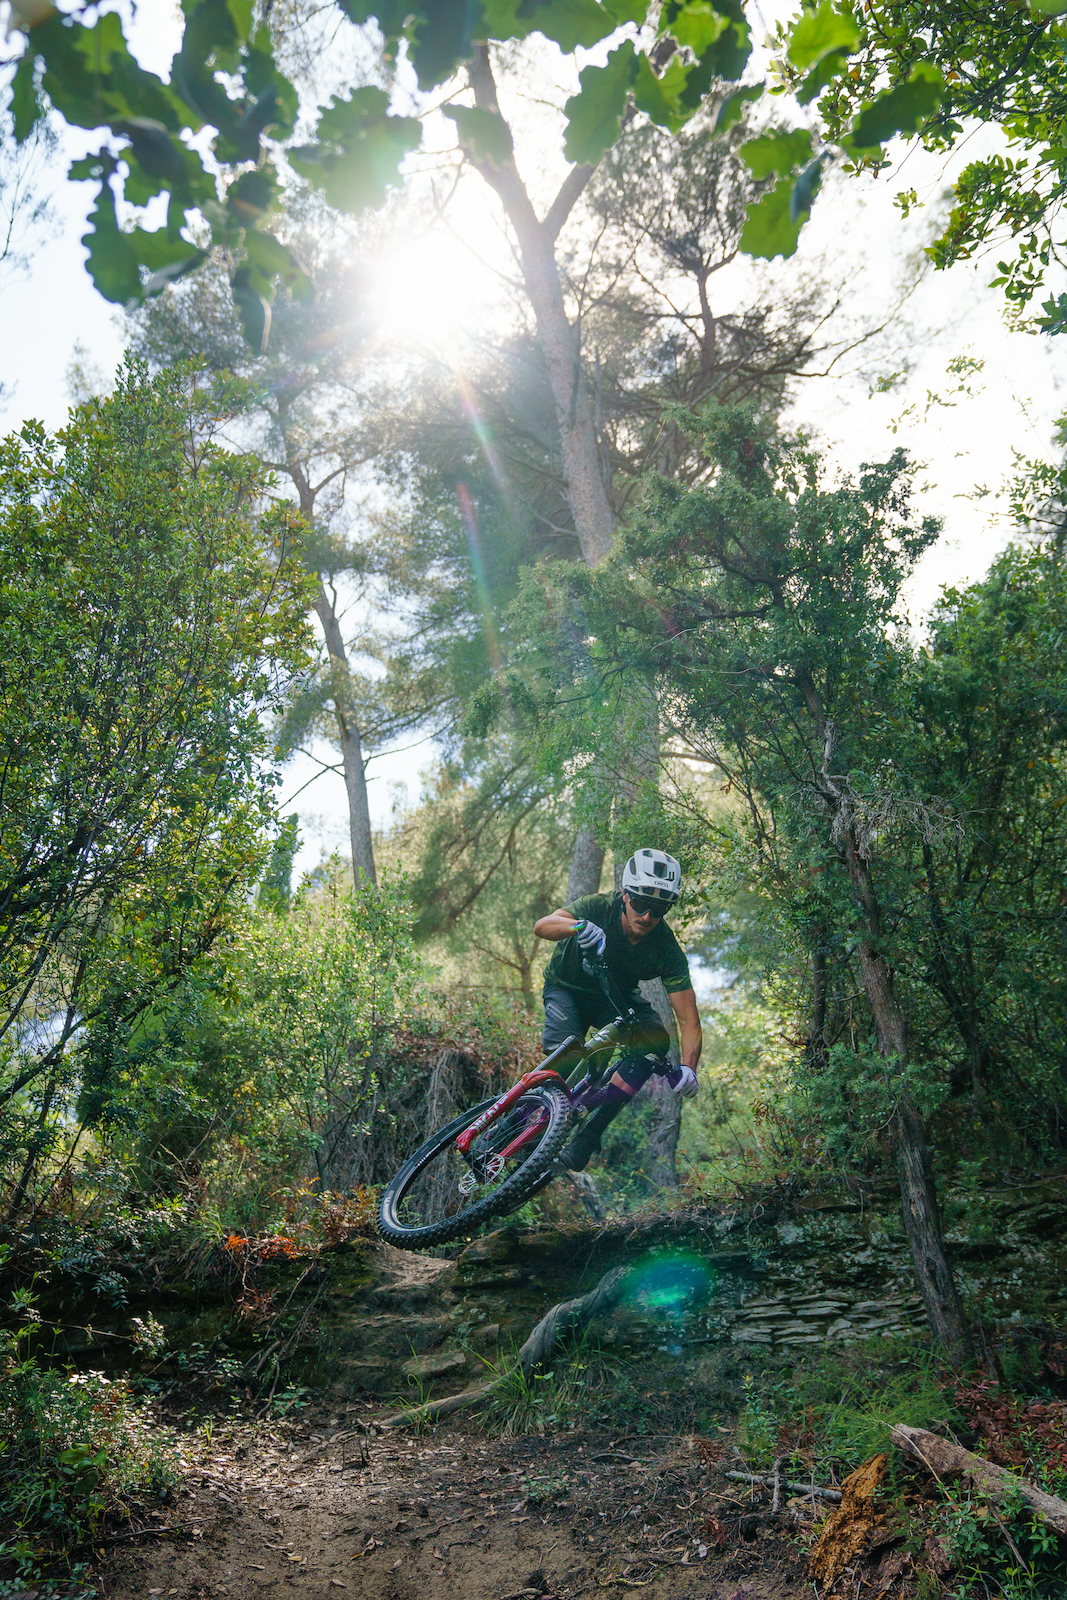 One day to ride with Adrien Dailly. Nice France. Photo by Matt Wragg